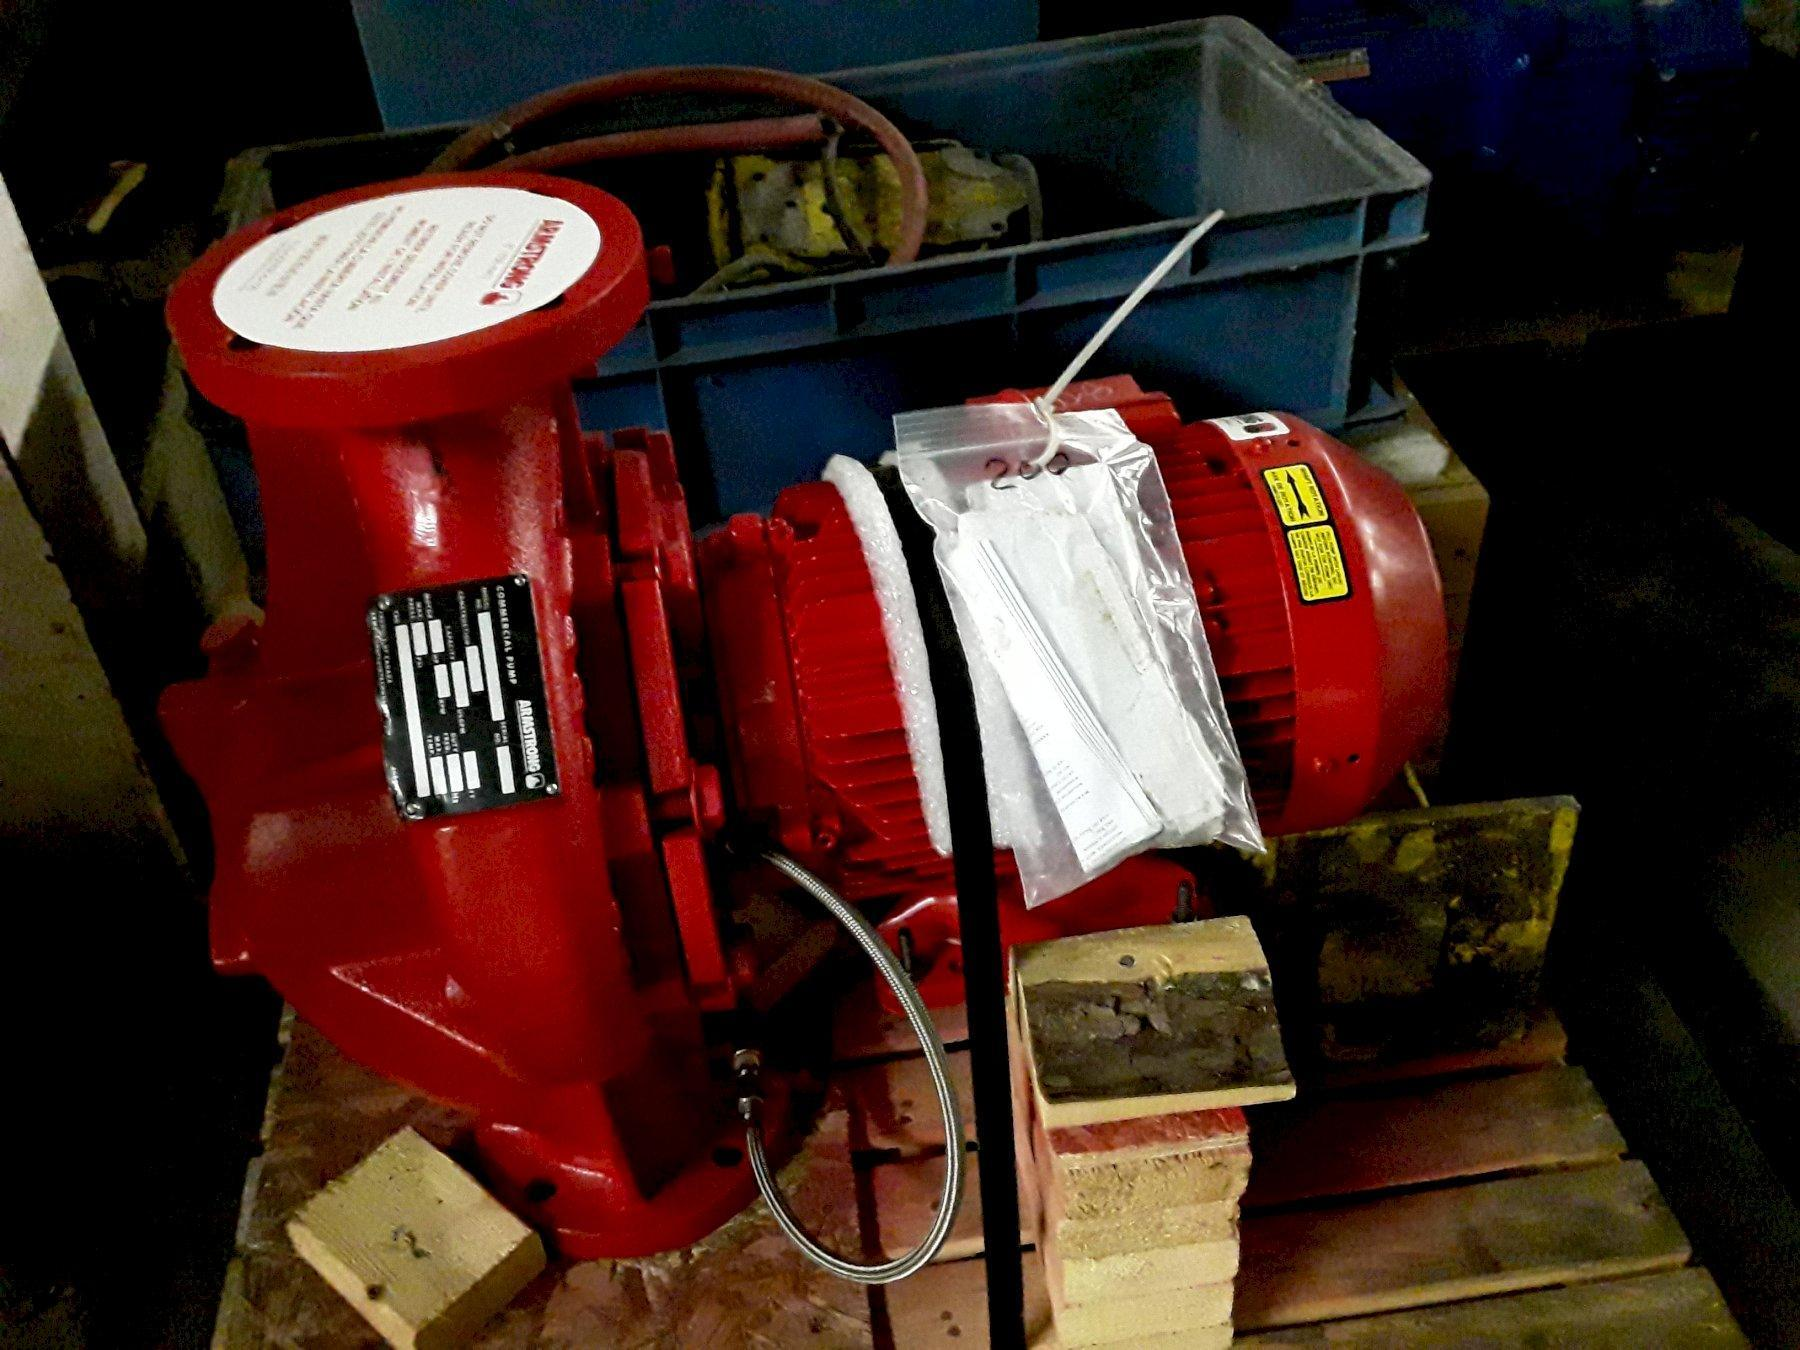 1 - NEW ARMSTRONG VERTICAL IN-LINE PUMP, MODEL #: 3X3X8 4380, S/N: 1018324033